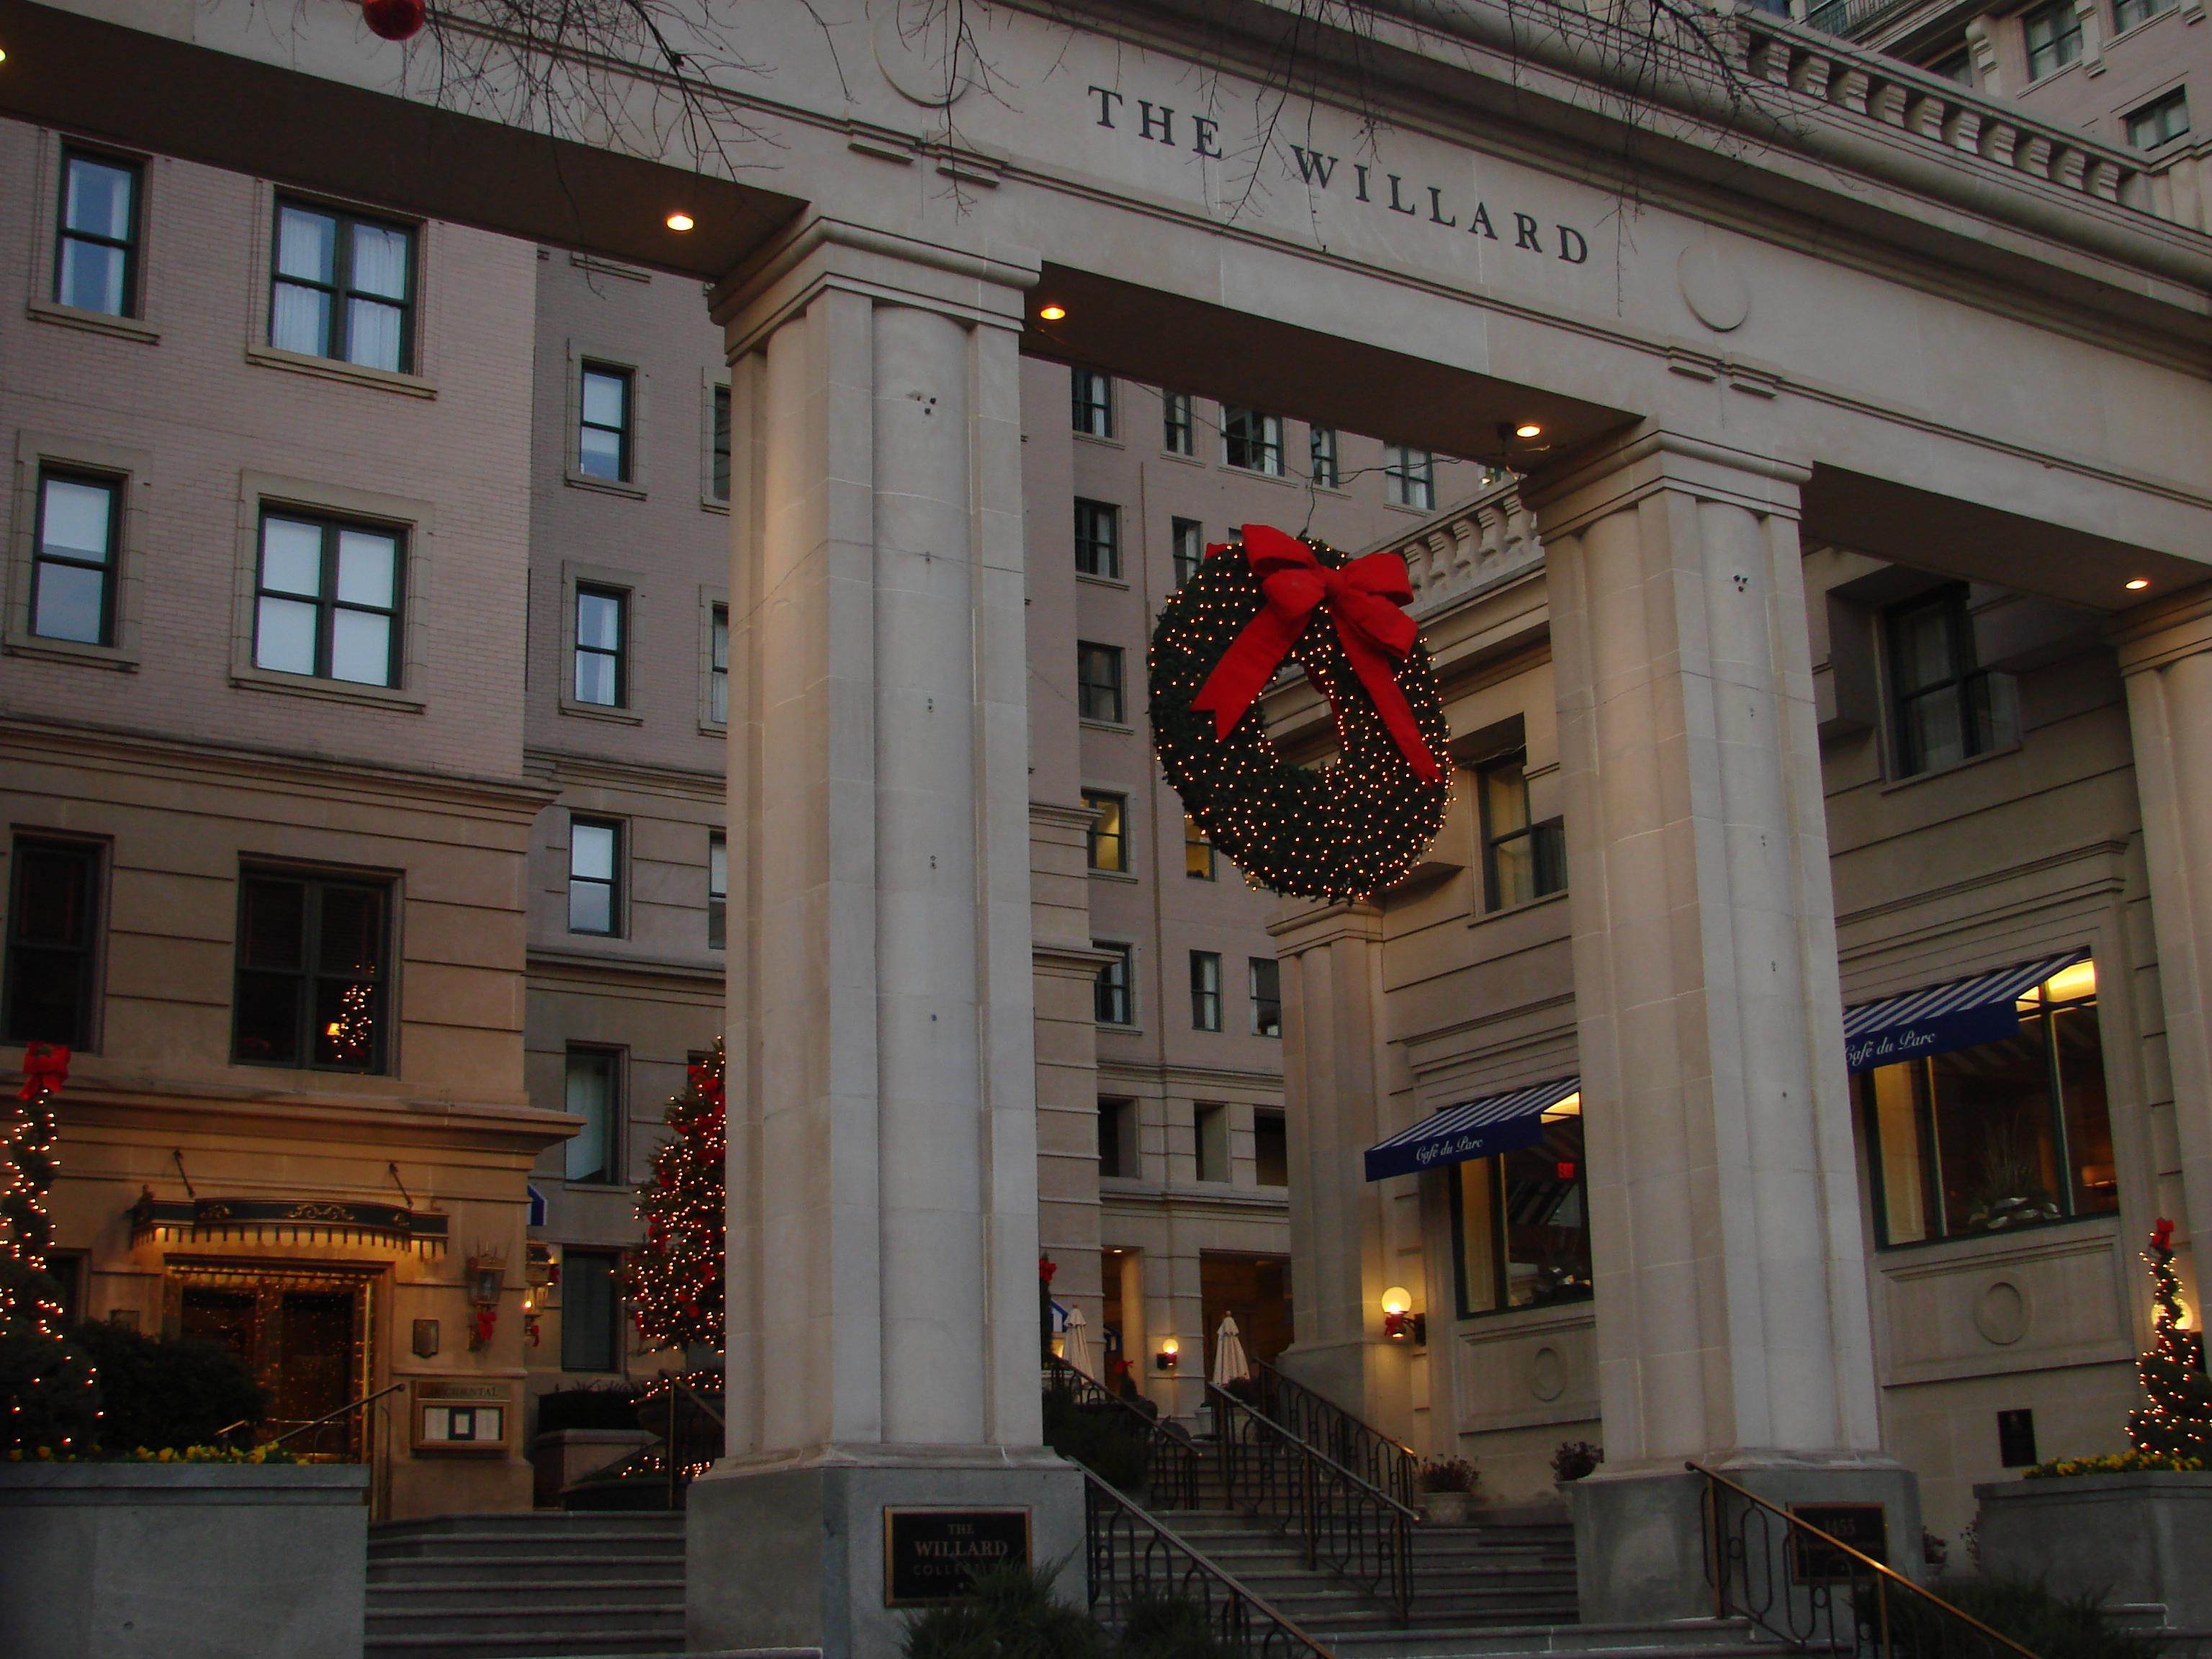 The Willard Hotel in DC at Christmas